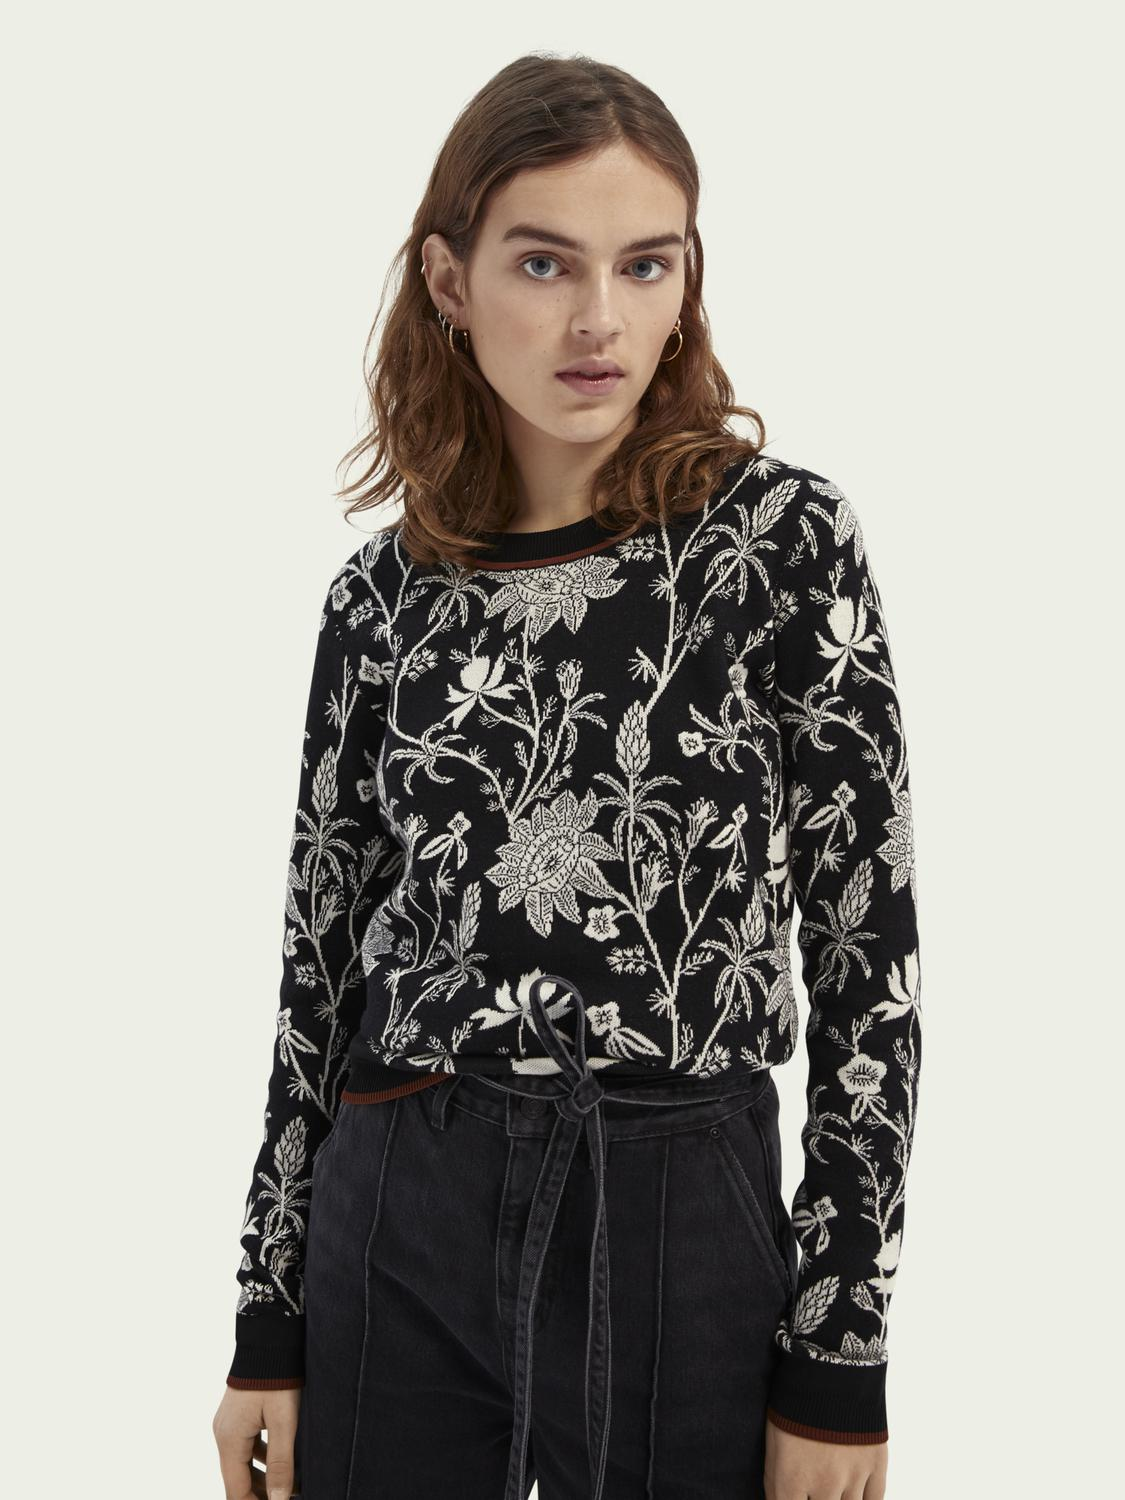 Knitted sweater in floral-print